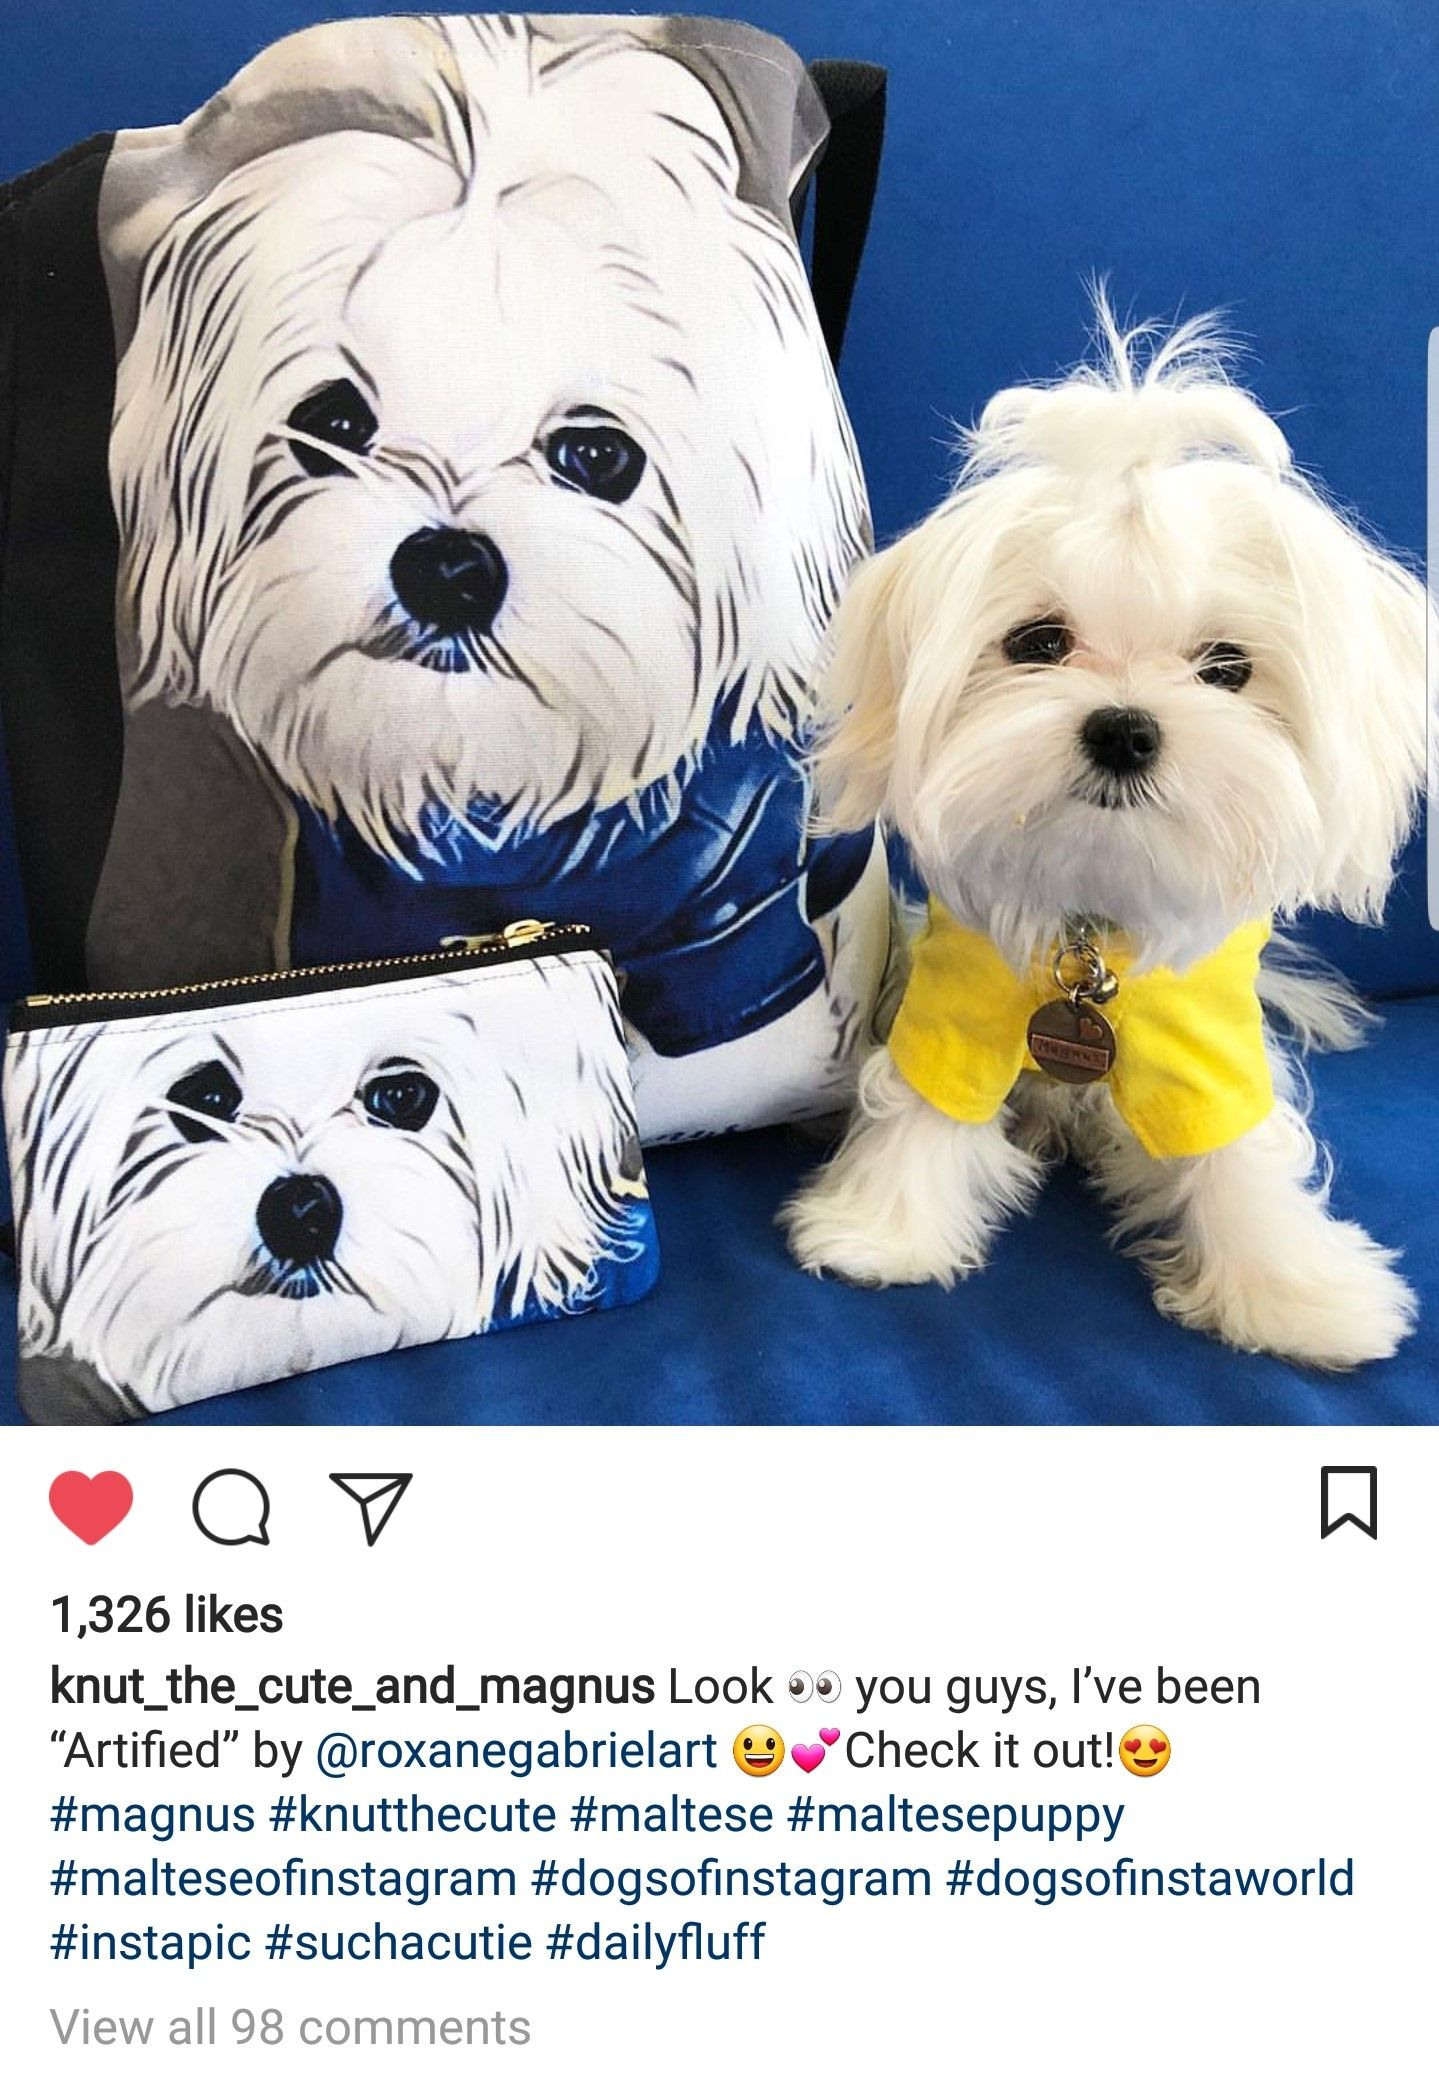 See My Shop Www Etsy Com Shop Roxanegabrielart To Get Your Pet Artified And Put On Merchandise For You Great Mothers Day G Cool Pets Animals Artwork Pets